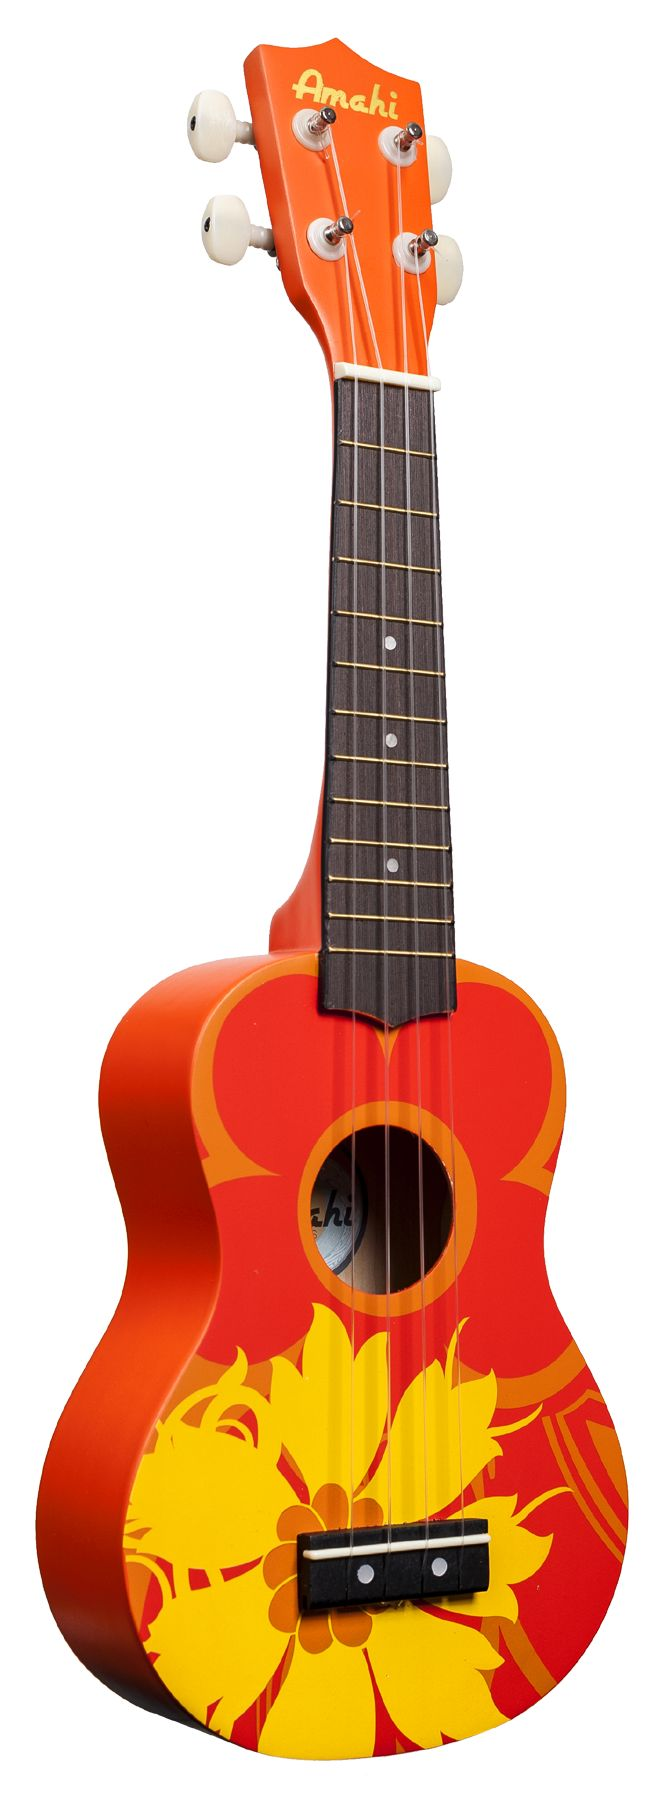 A beautiful ukulele from Amati's student series. - Orange Flower Design - Soprano Size - Painted Wood Body - Open Geared Tuners - Nylon Strings and Vinyl Zippered Carrying Bag